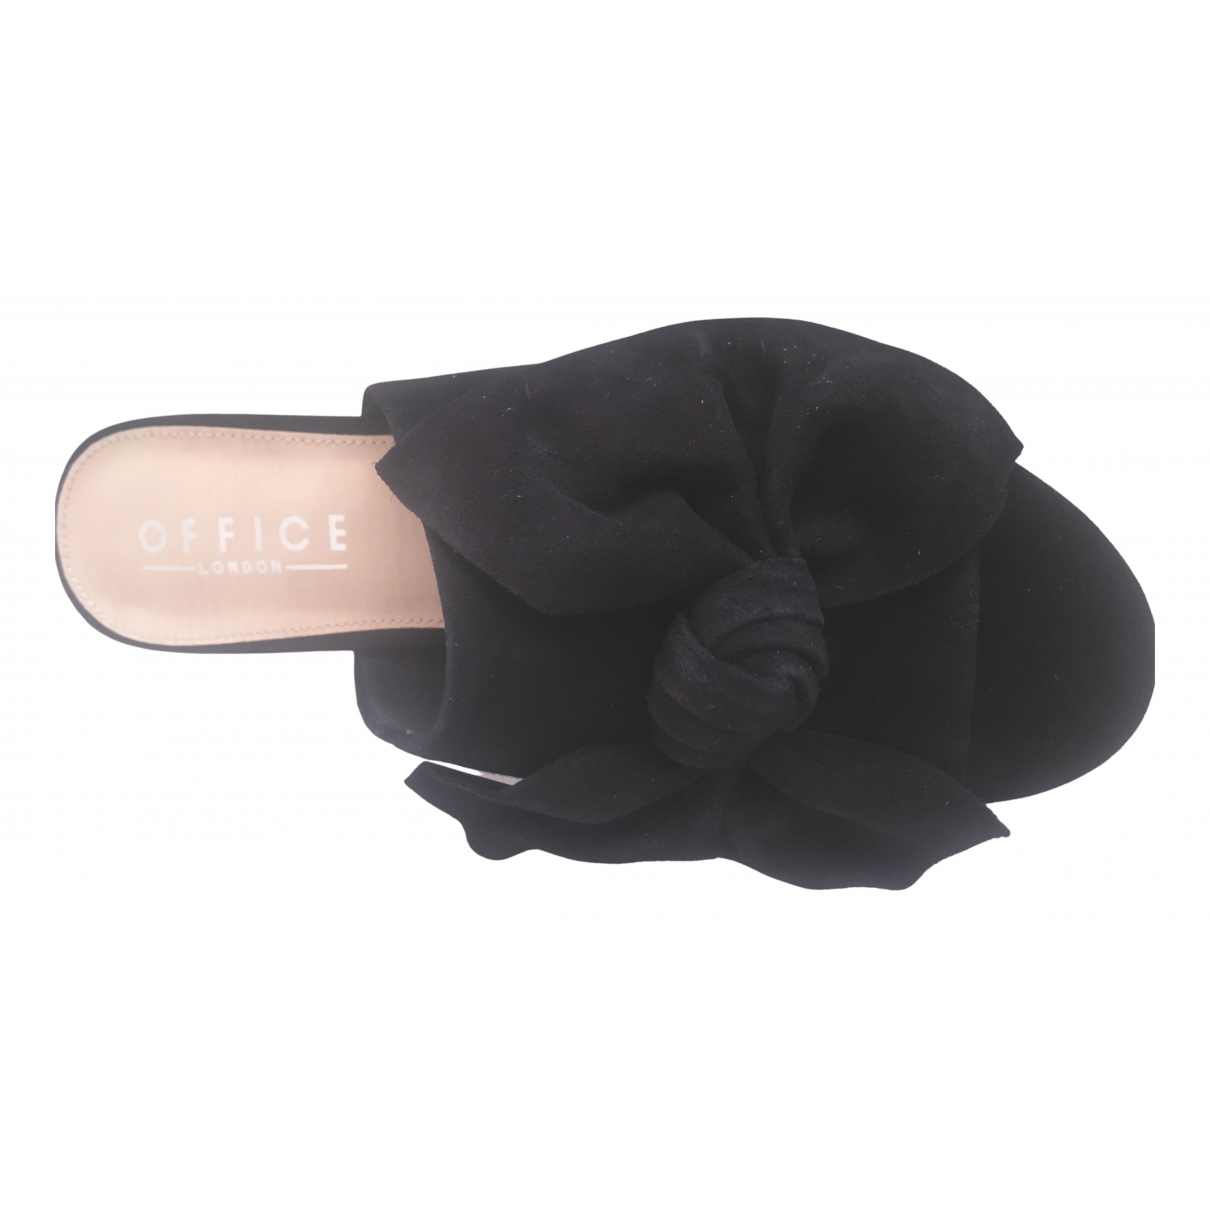 Office London \N Black Suede Mules & Clogs for Women 5 UK